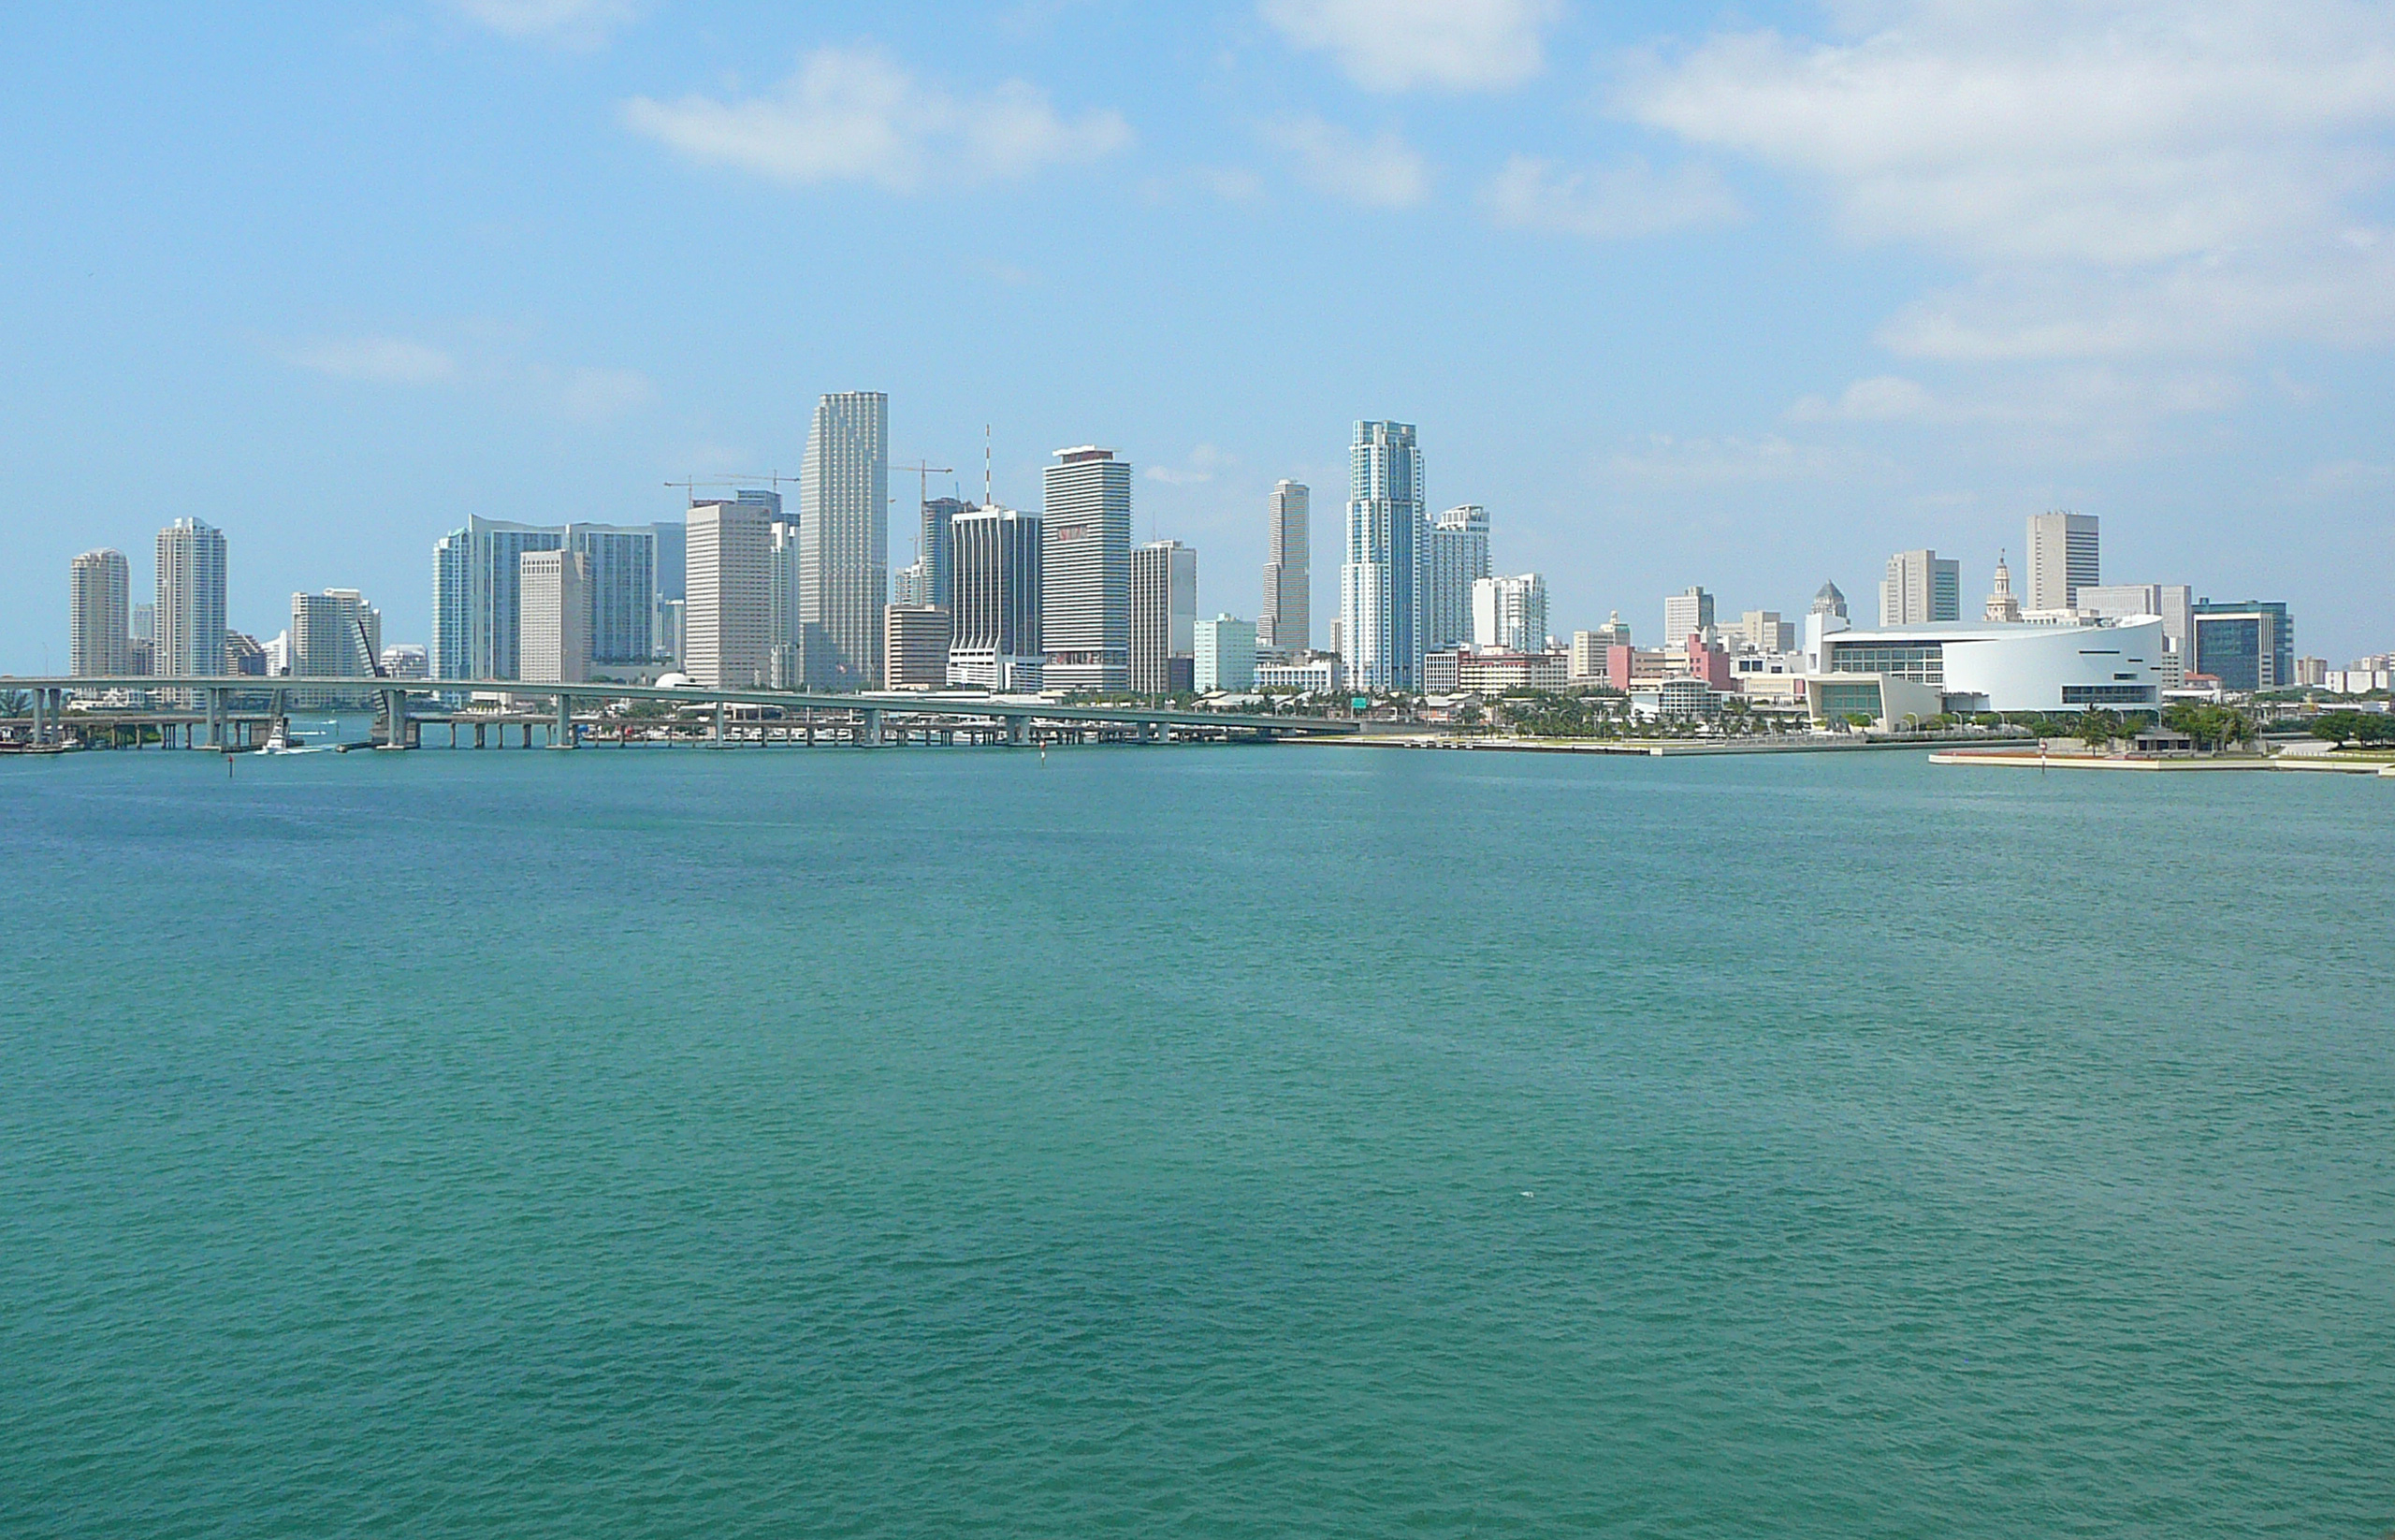 Long-term predictions for Miami sea level rise could come soon